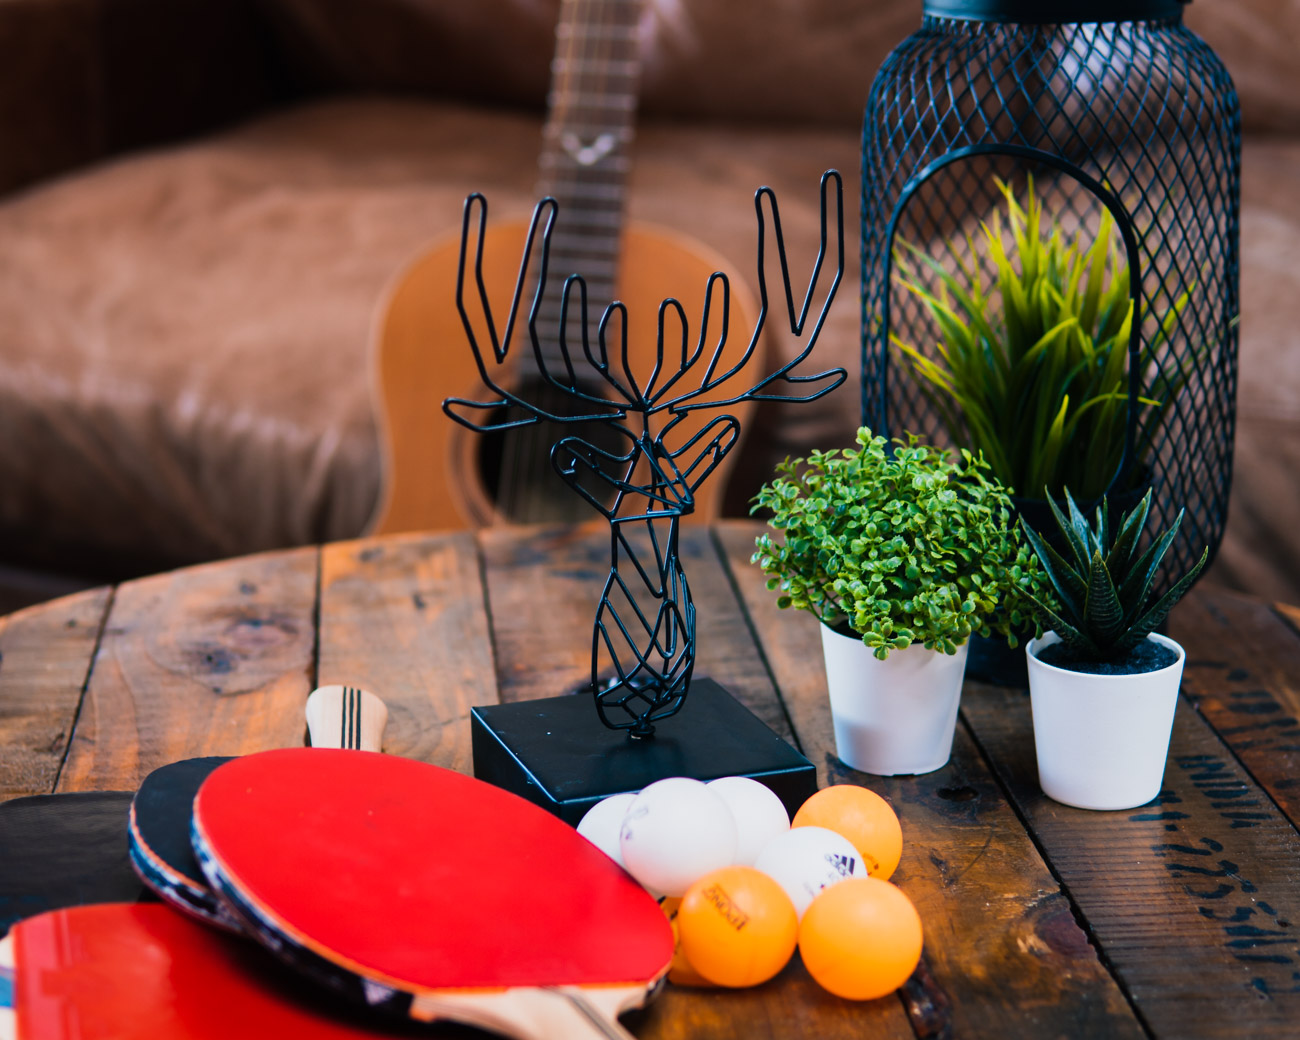 Coffee table with guitar, plants and ping pong bats and balls